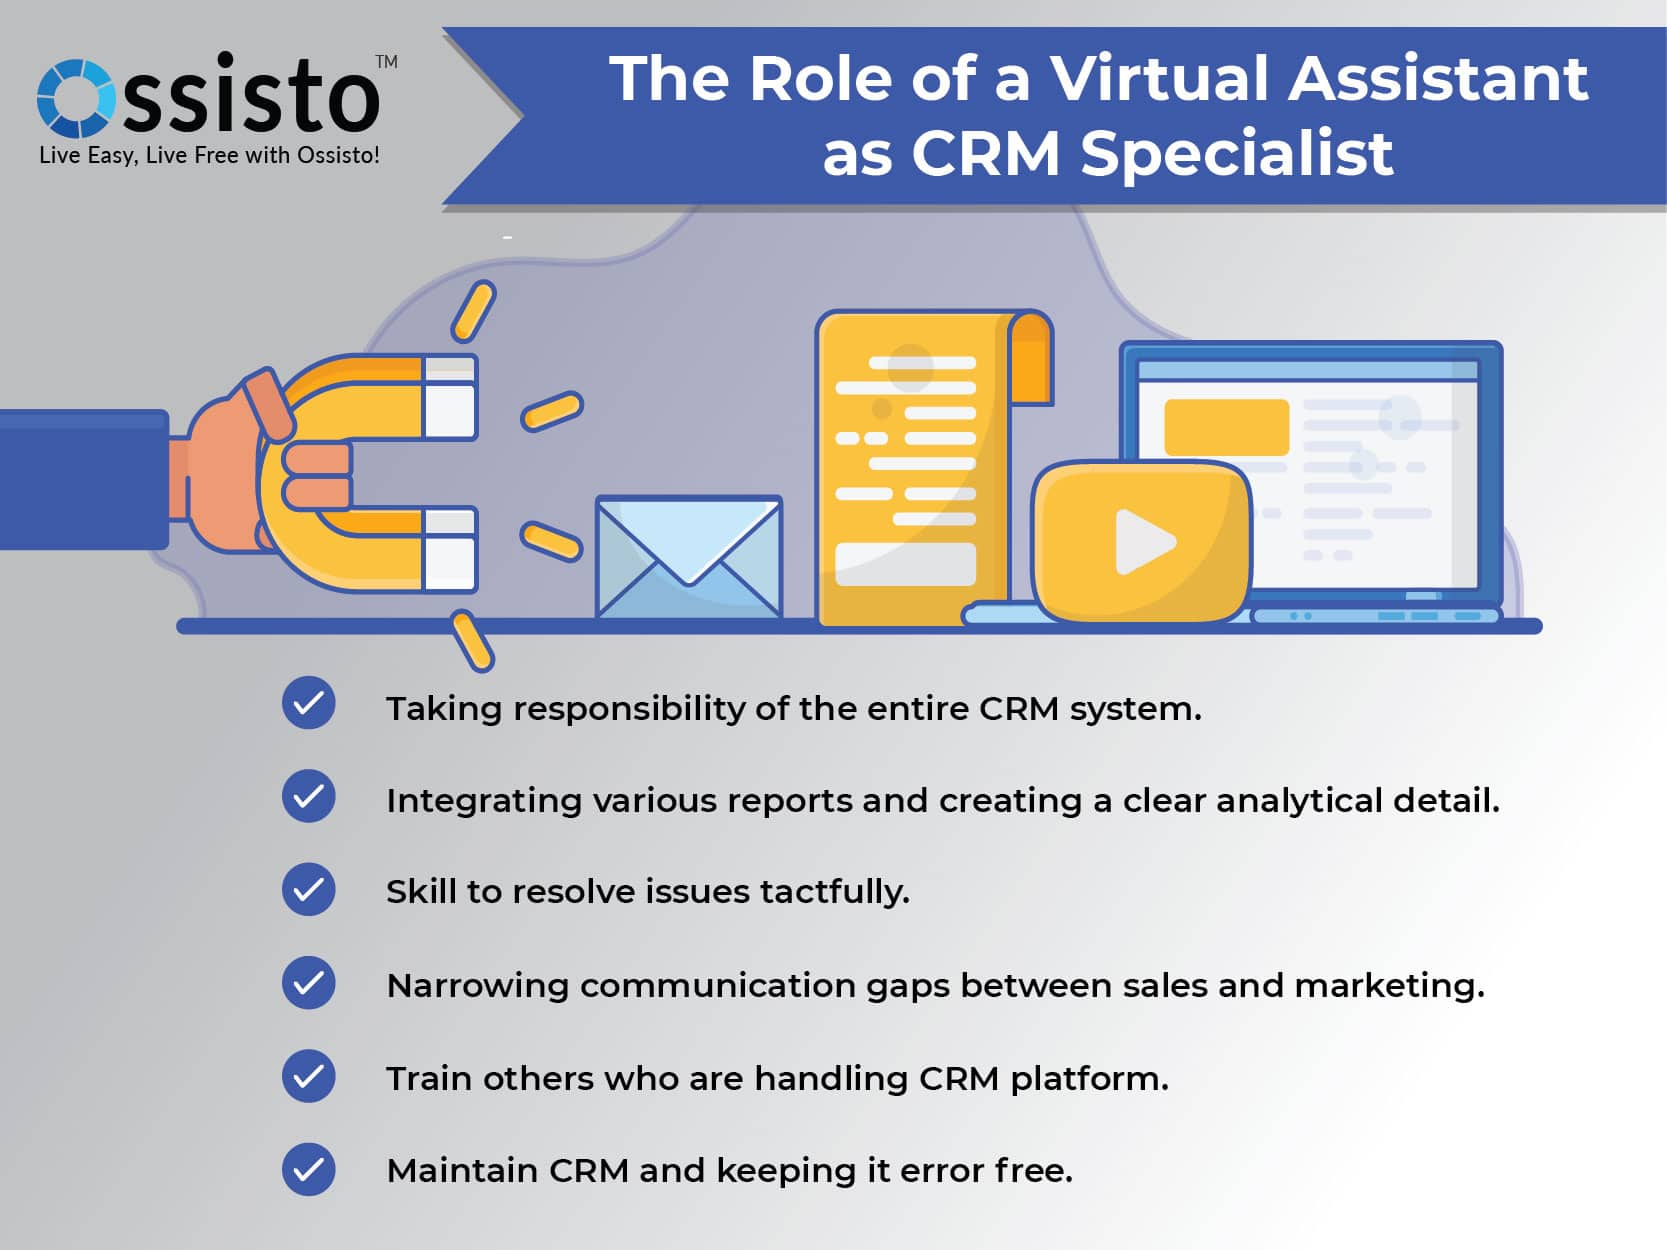 The Role of a Virtual Assistant as CRM specialist